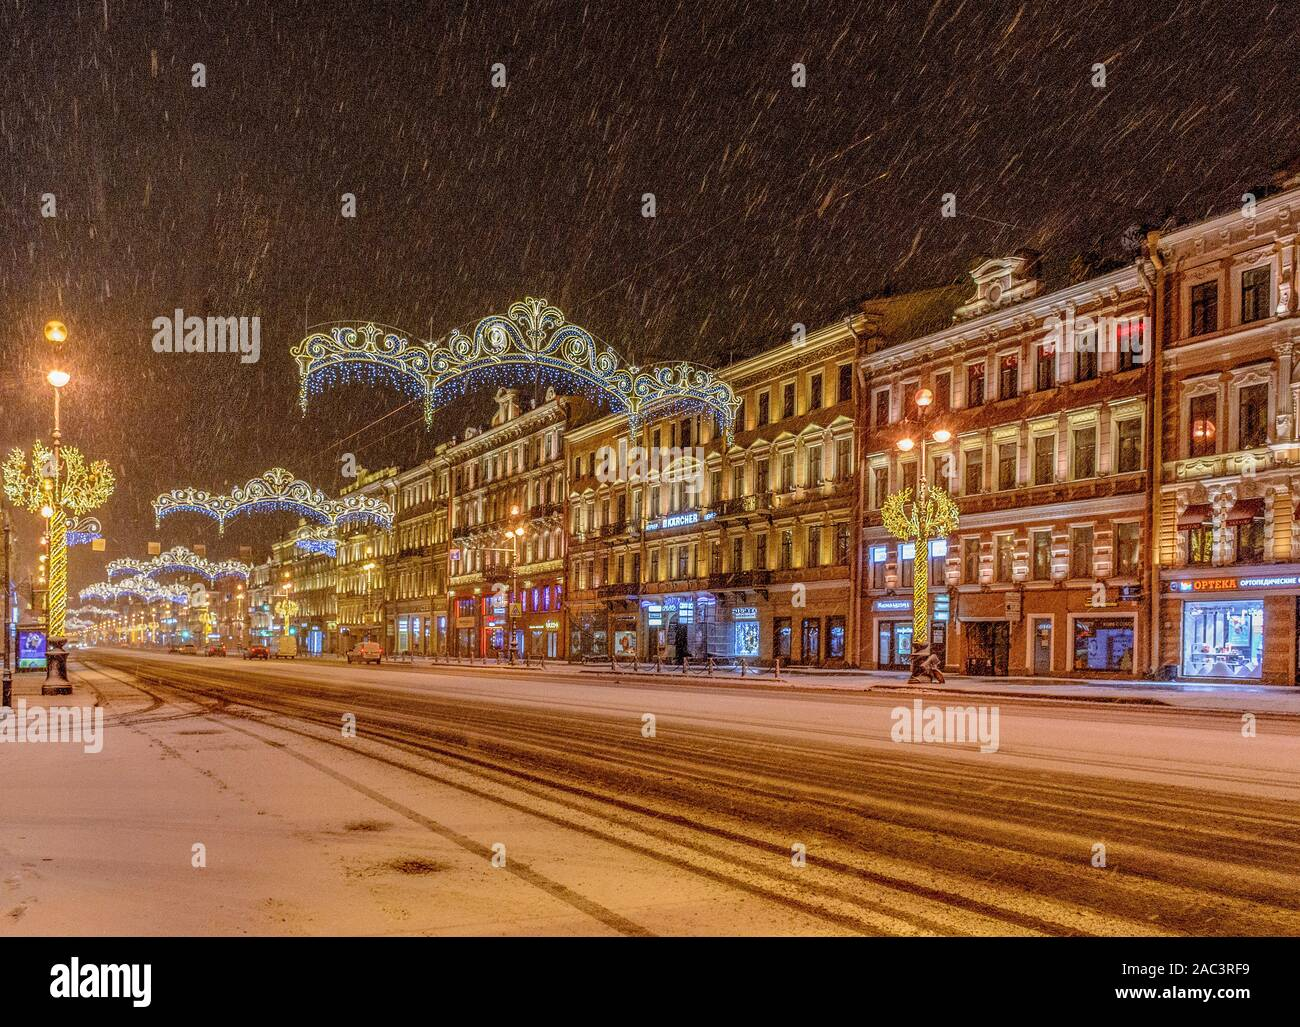 Nevsky prospect, St. Petersburg. Russia 11 December 2018.  Snow-covered and decorated for the New year Nevsky prospect in the early December morning. Stock Photo